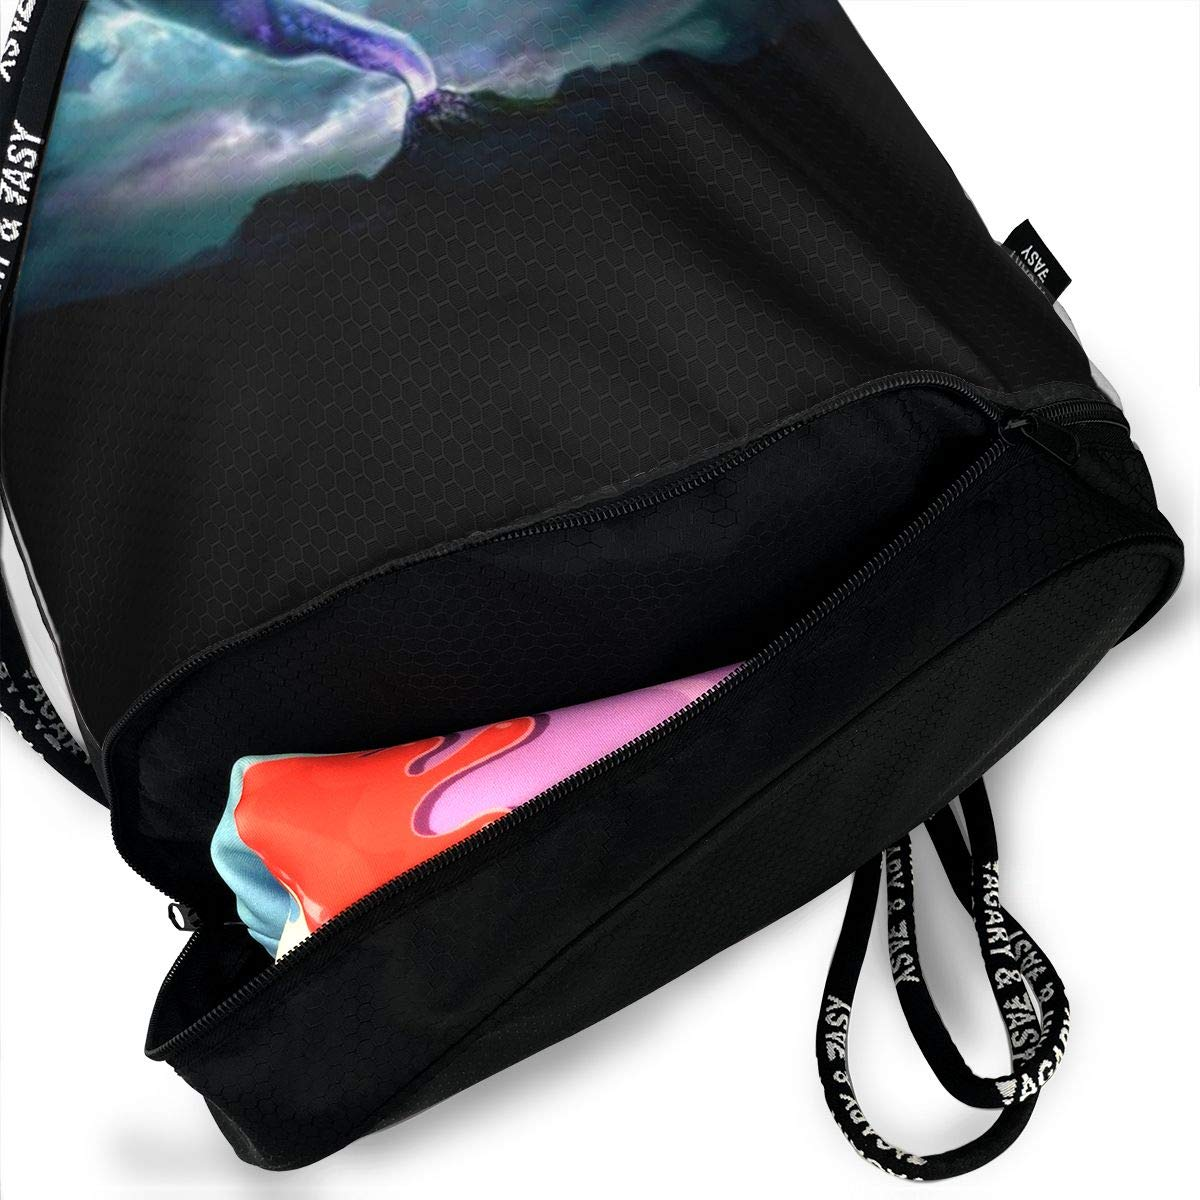 Tornado Horrible Printed Sackpack Sport Cinch Pack Backpack for Men Kji Gym Sack Drawstring Bag Women